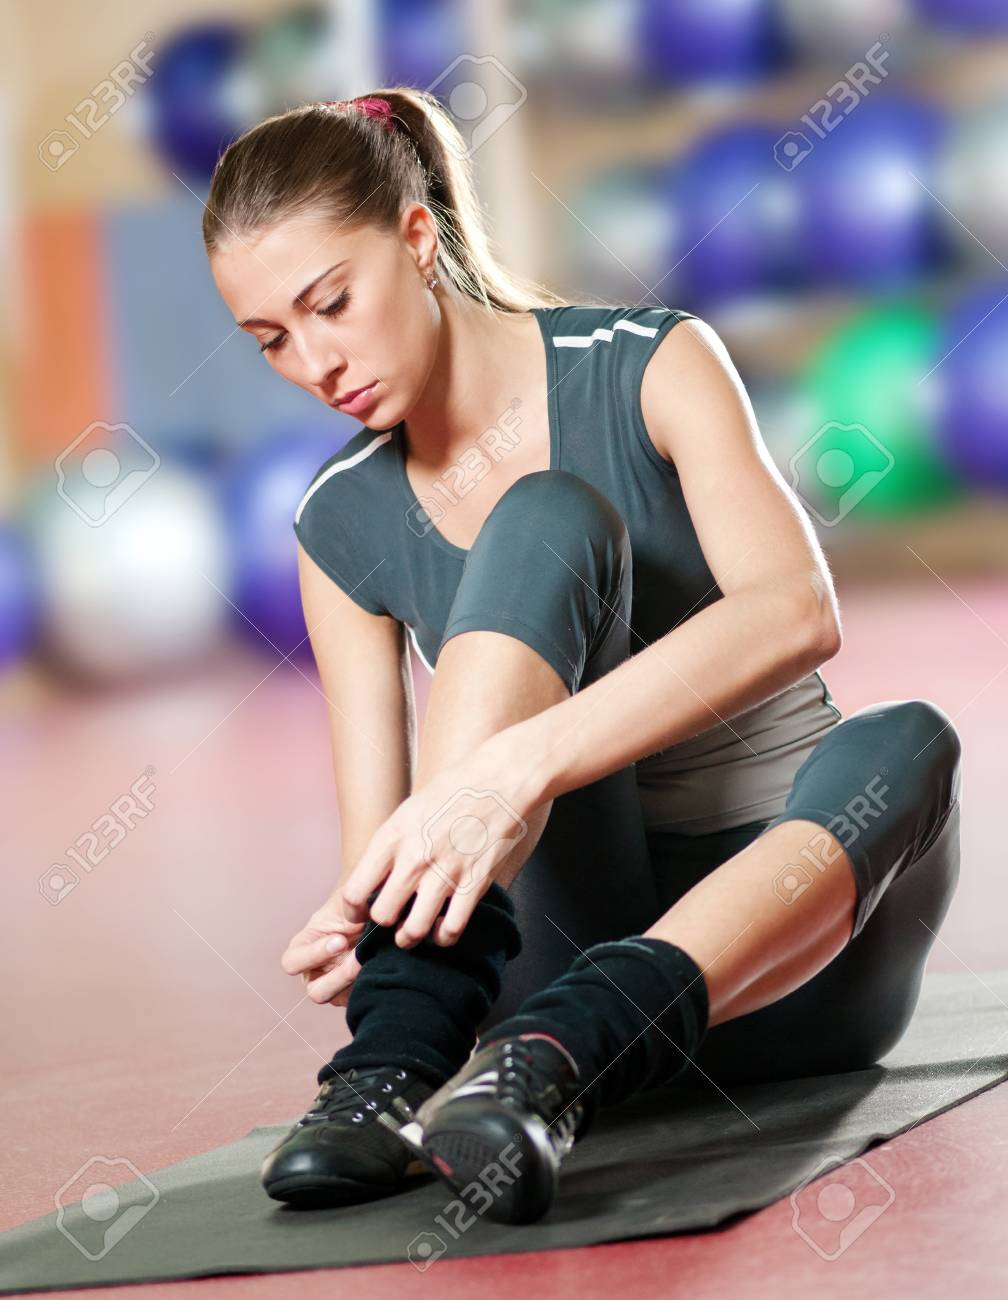 Beautiful sport woman doing stretching fitness exercise at sport gym. Yoga Stock Photo - 9805912